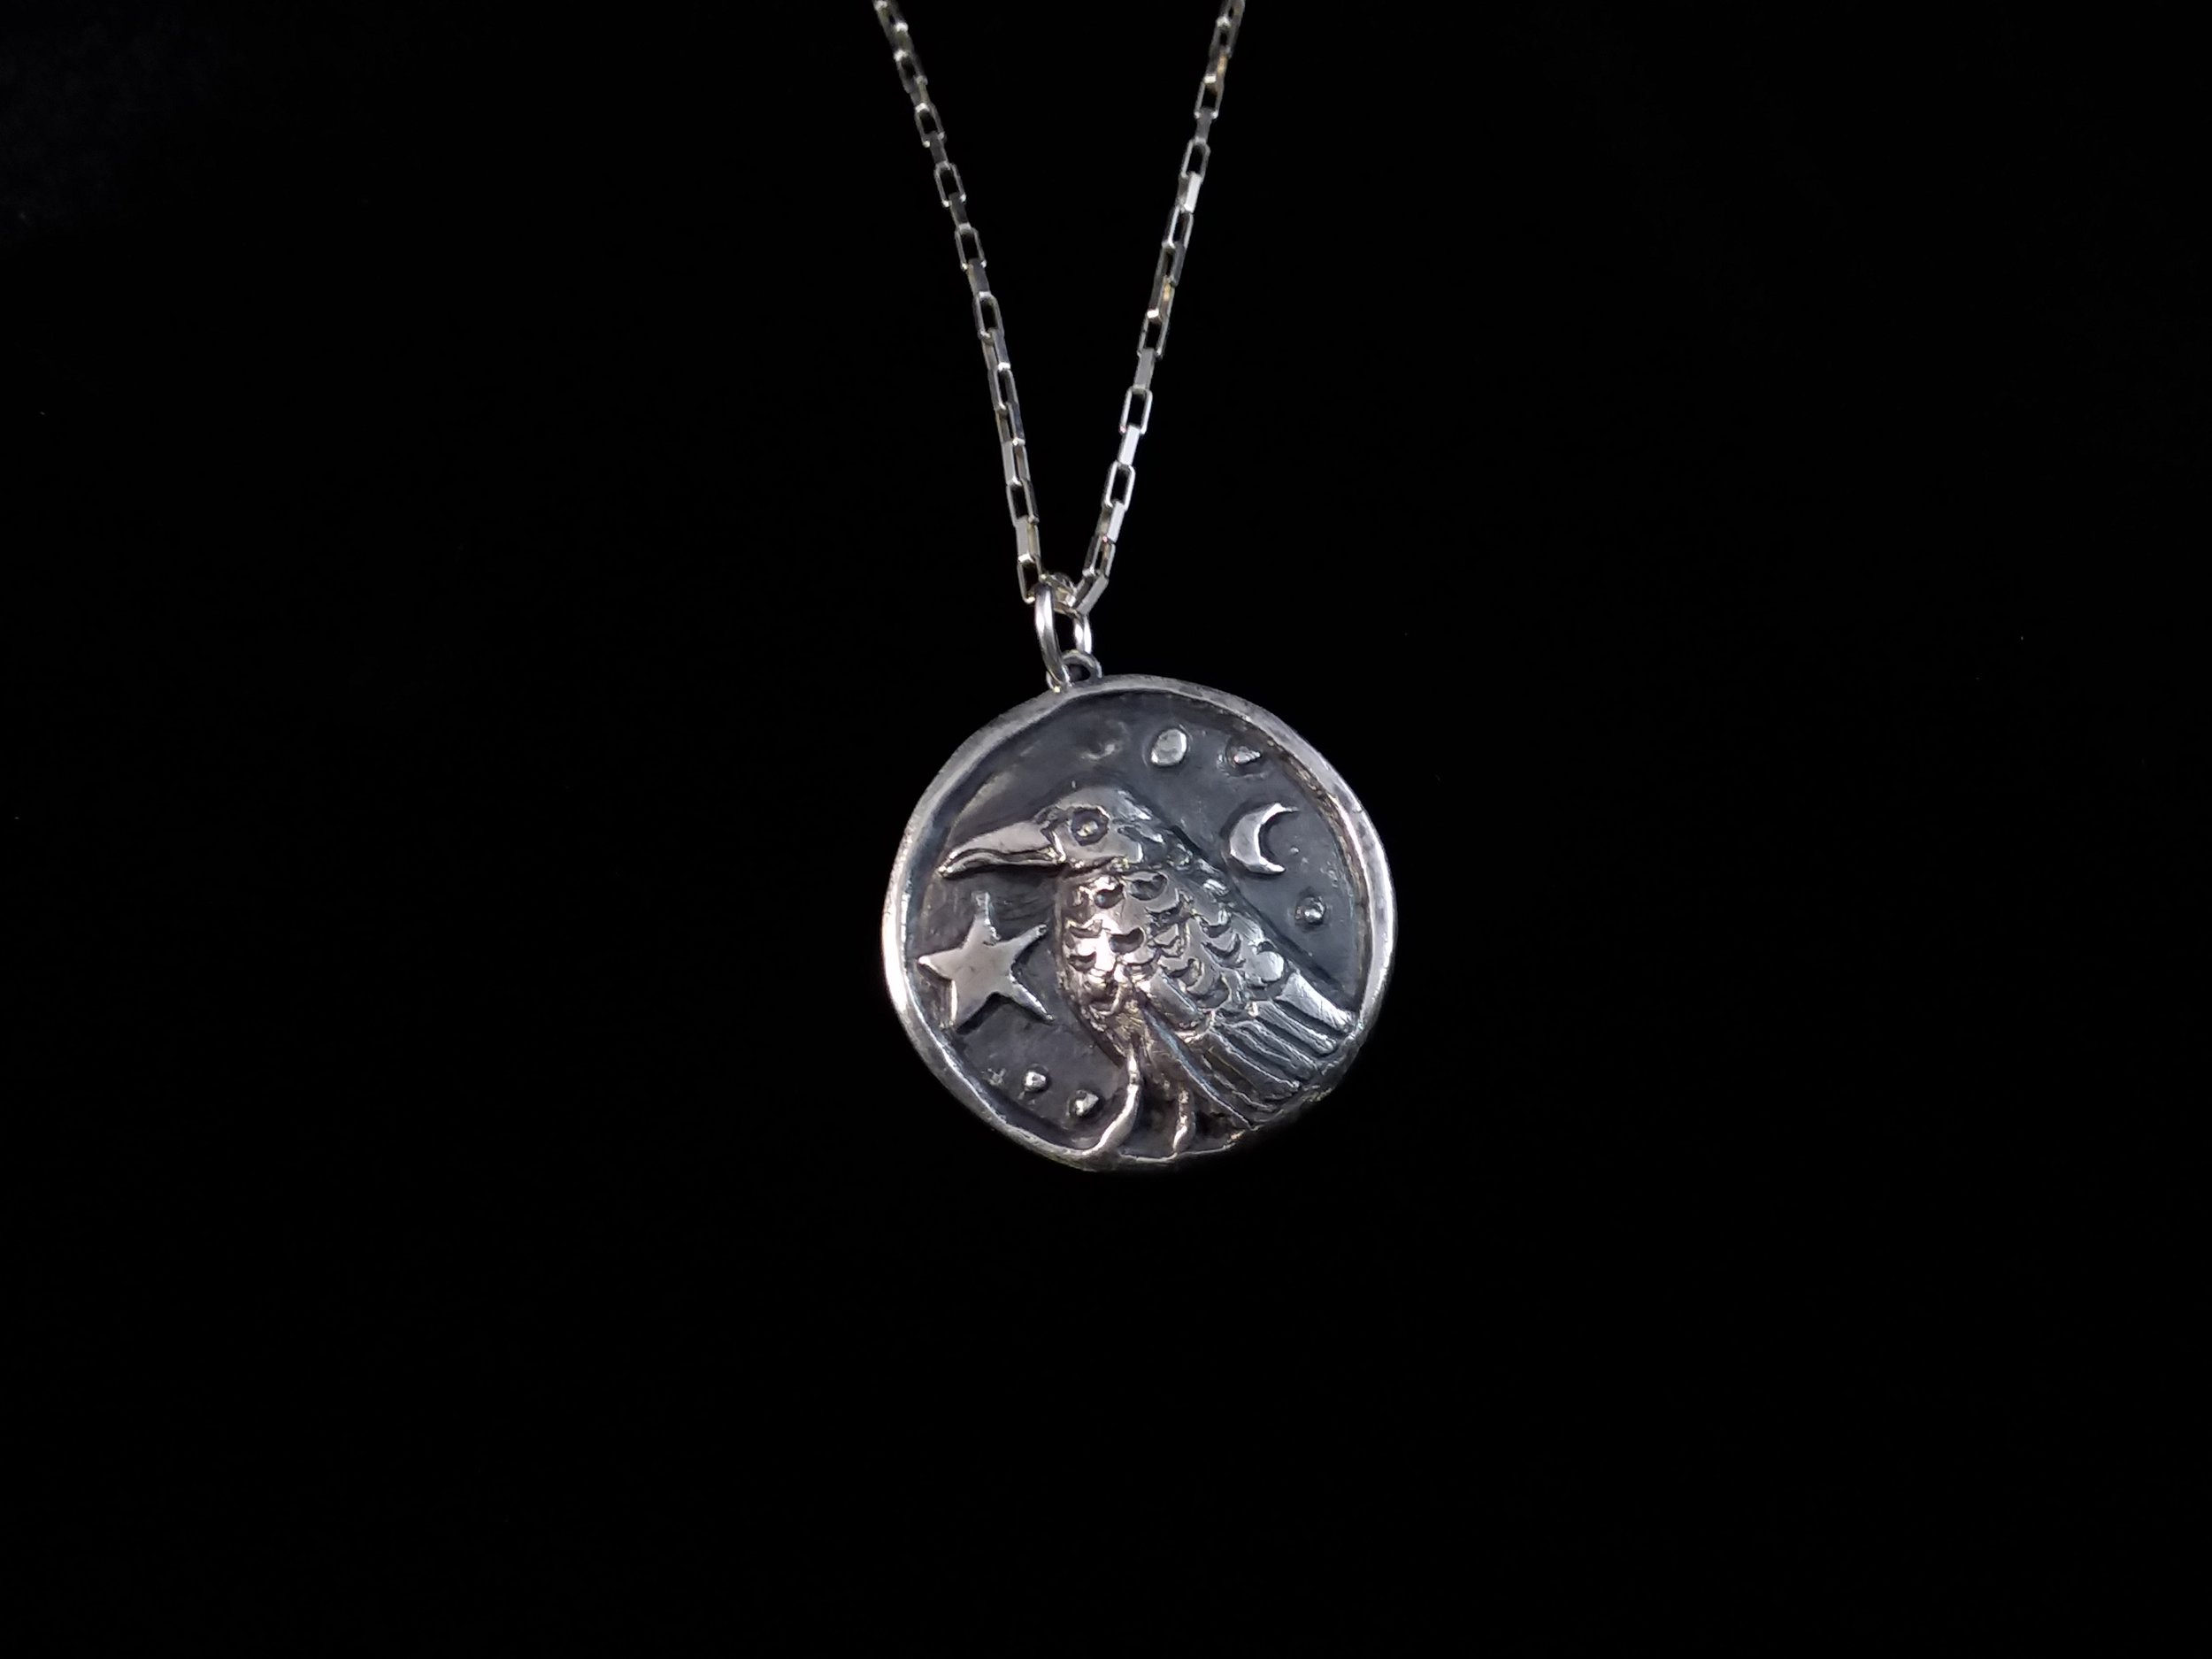 Guterbock_Rose_Fire and Water Necklace.jpg